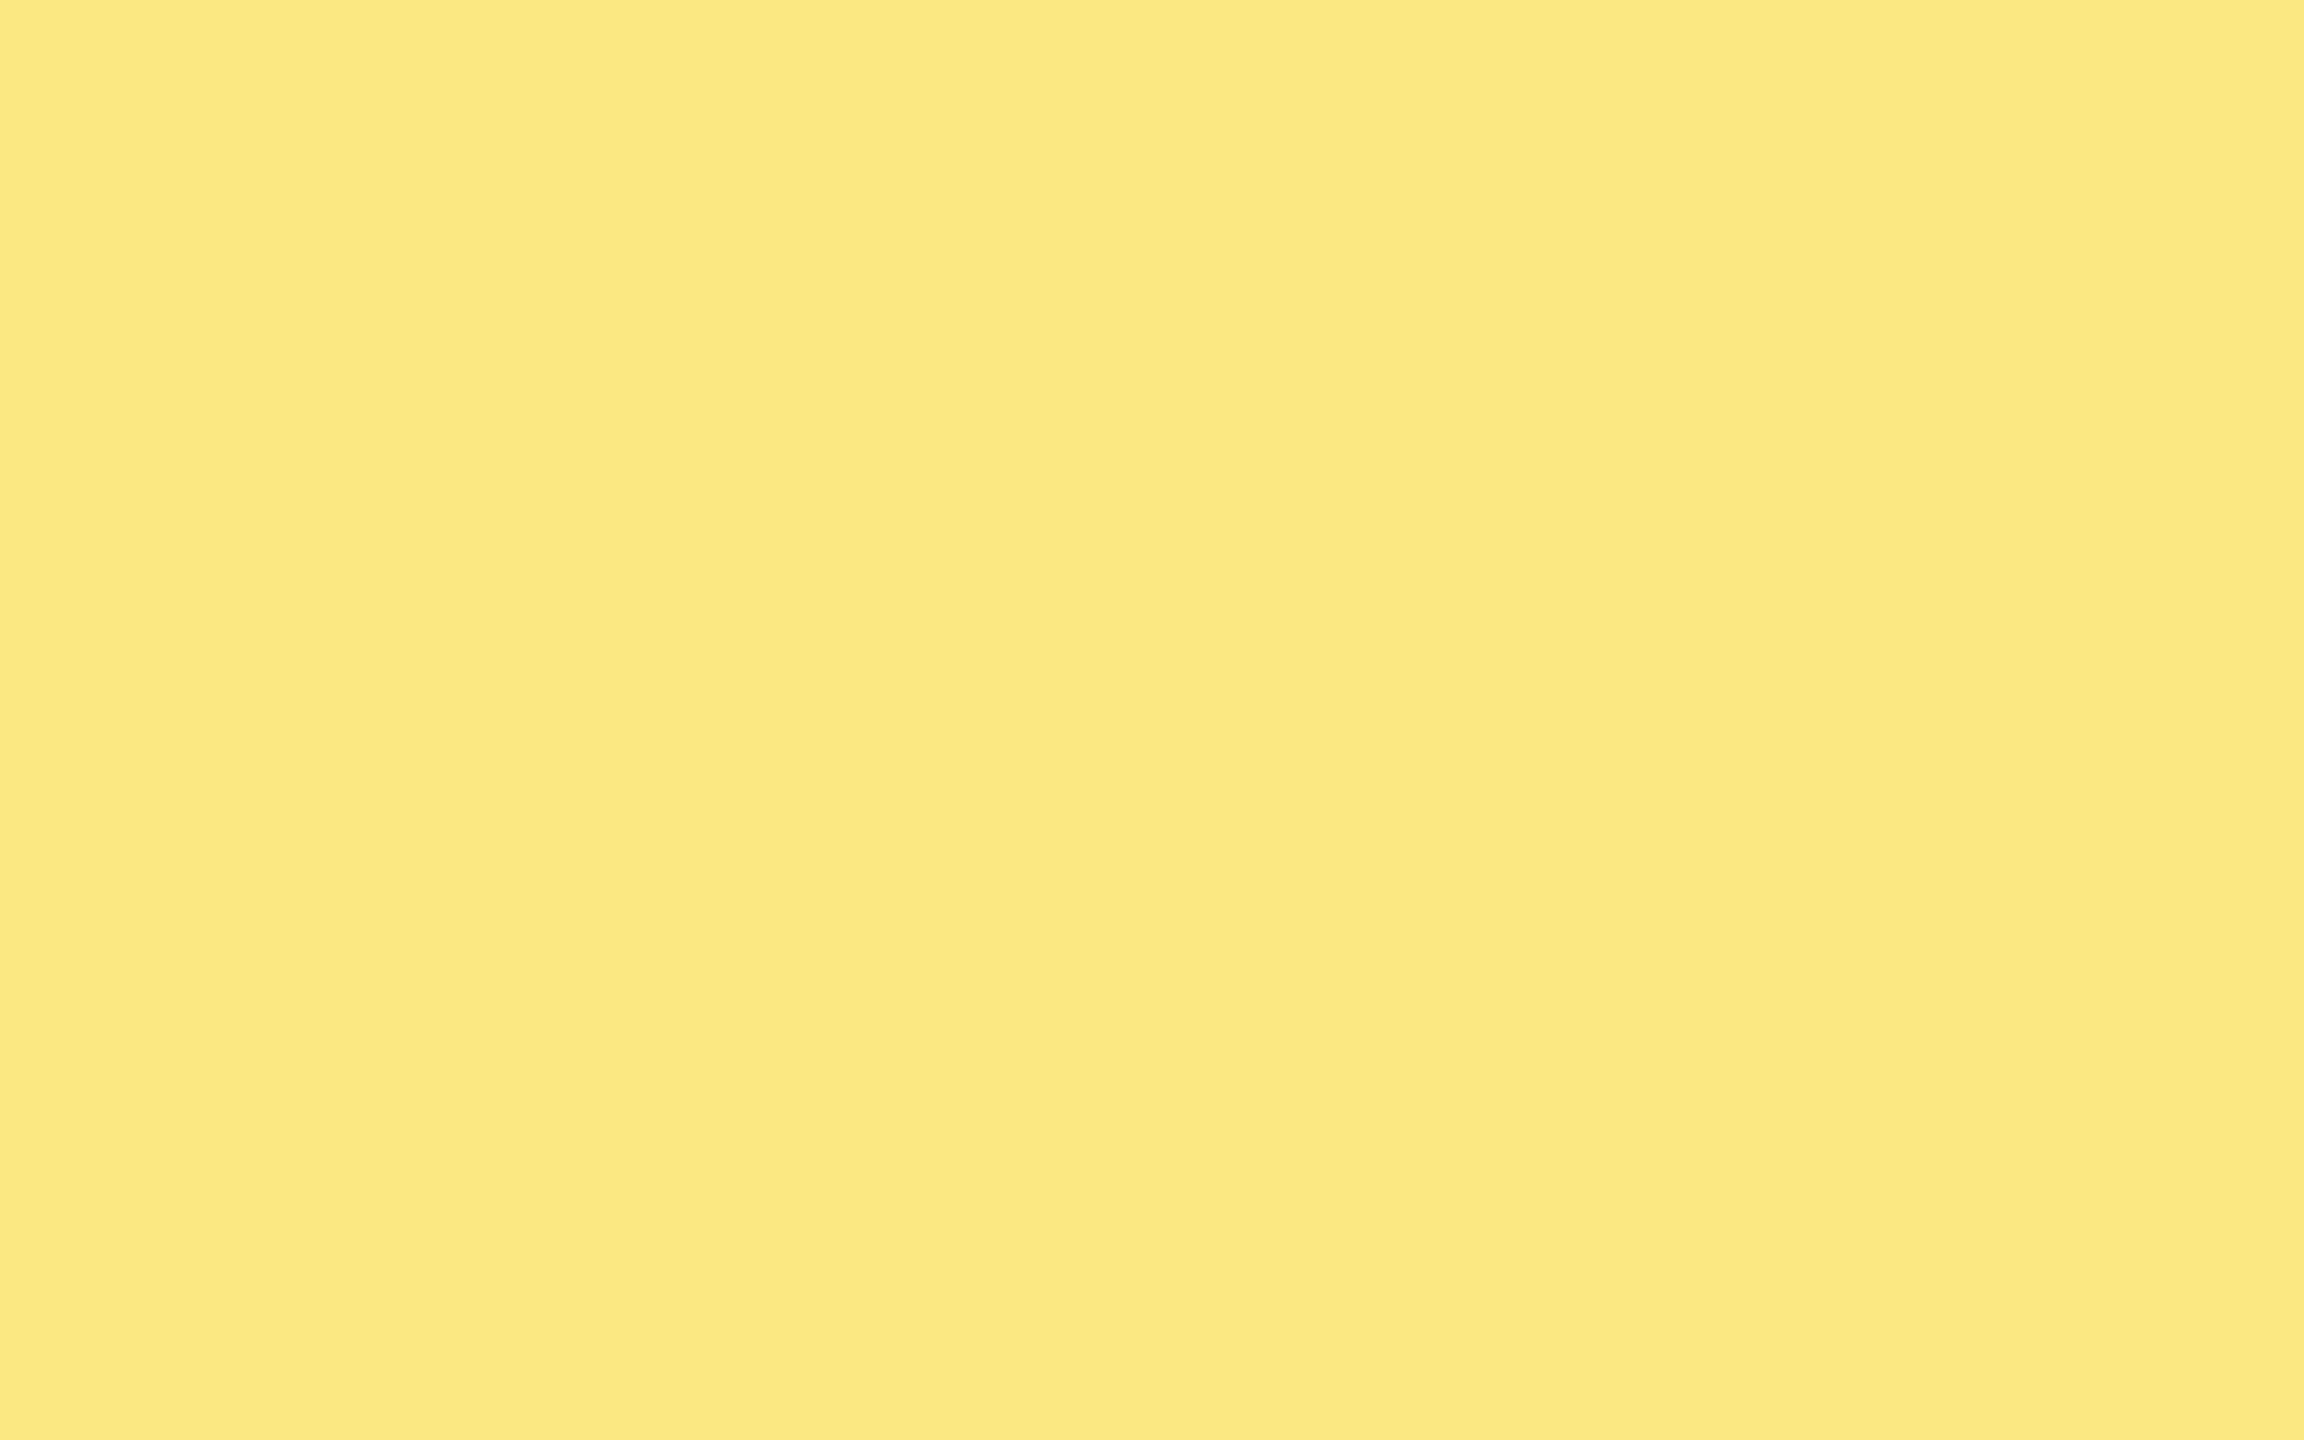 2304x1440 Yellow Crayola Solid Color Background